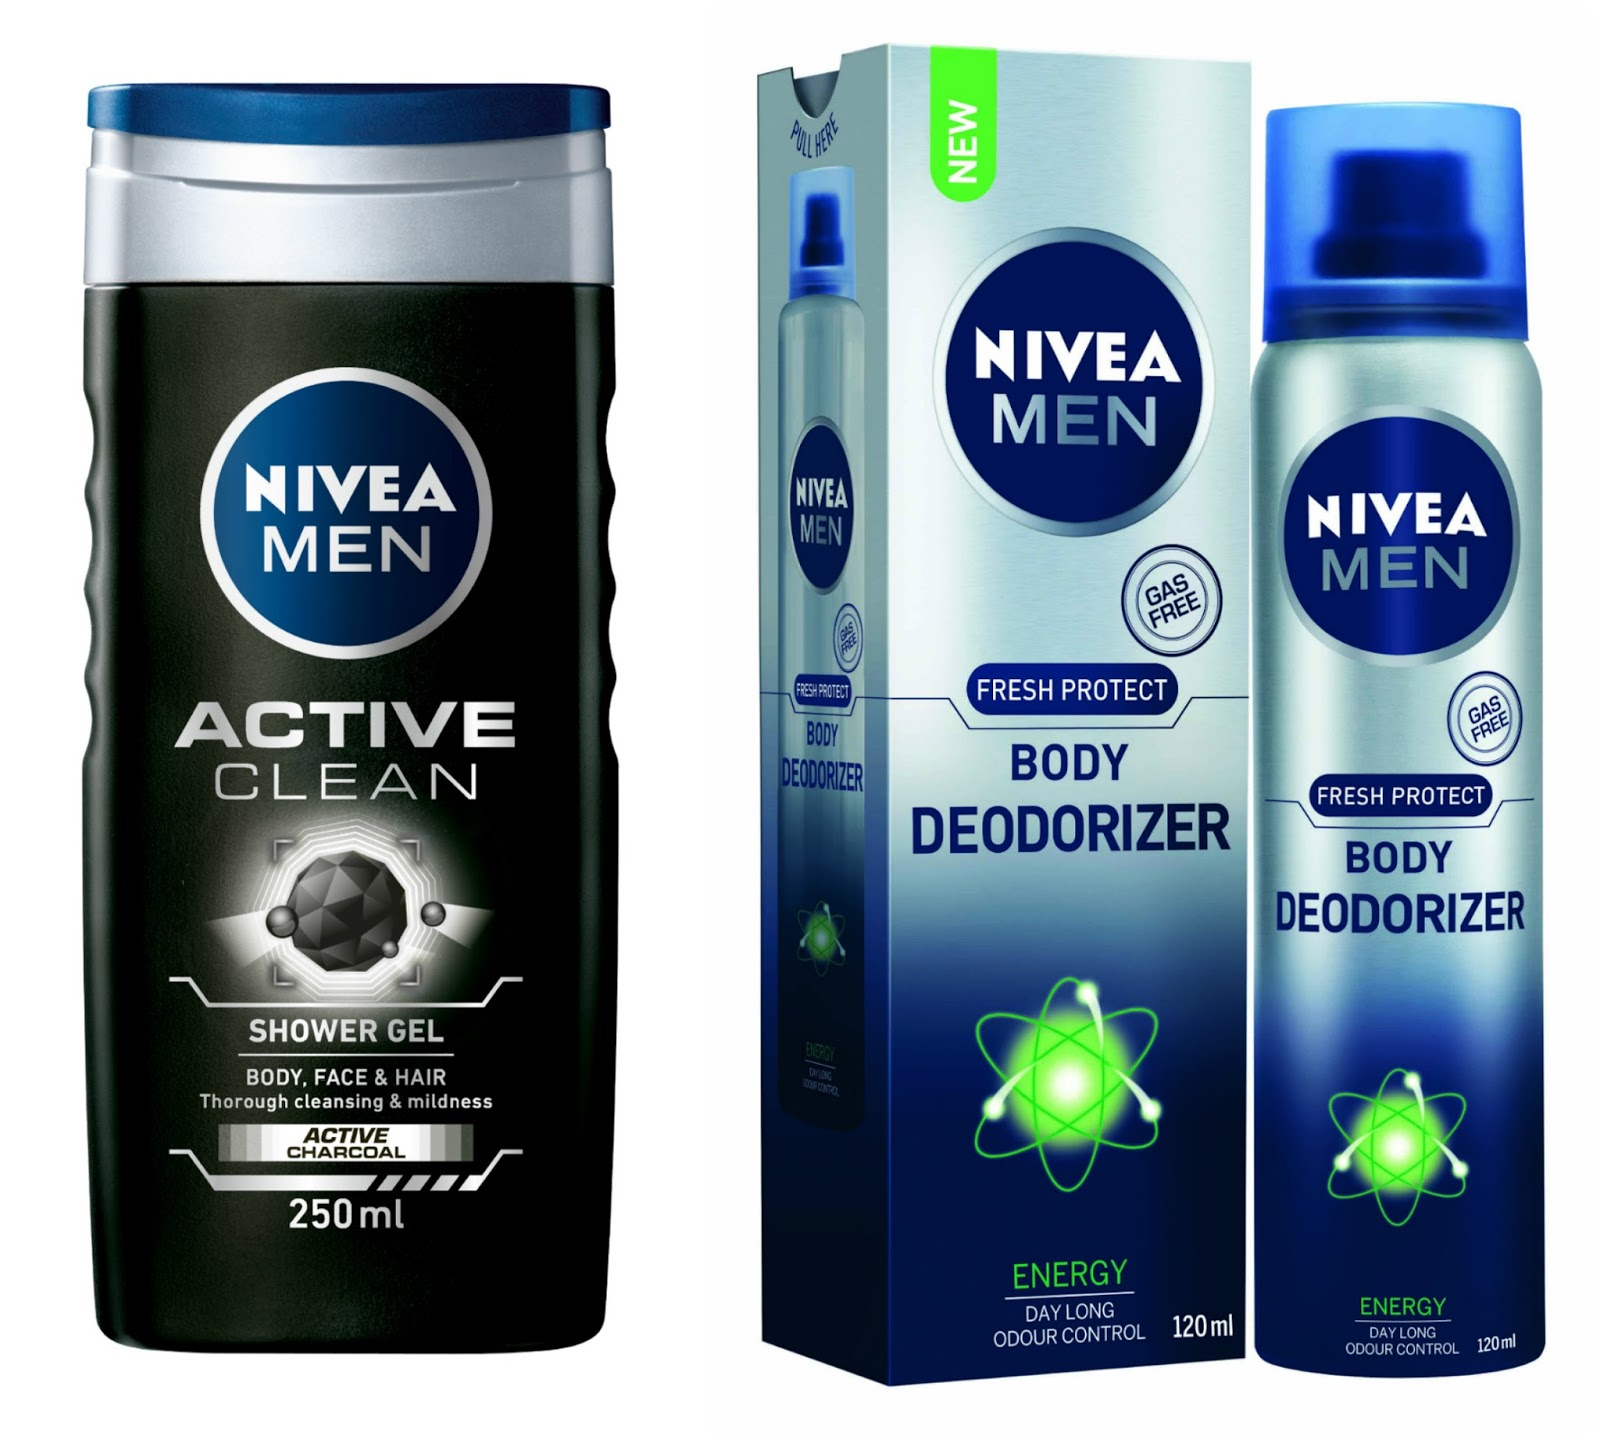 Awesome PR:Nivea Men Body Deodoriser U0026 Active Clean Shower Gel With Active Charcoal